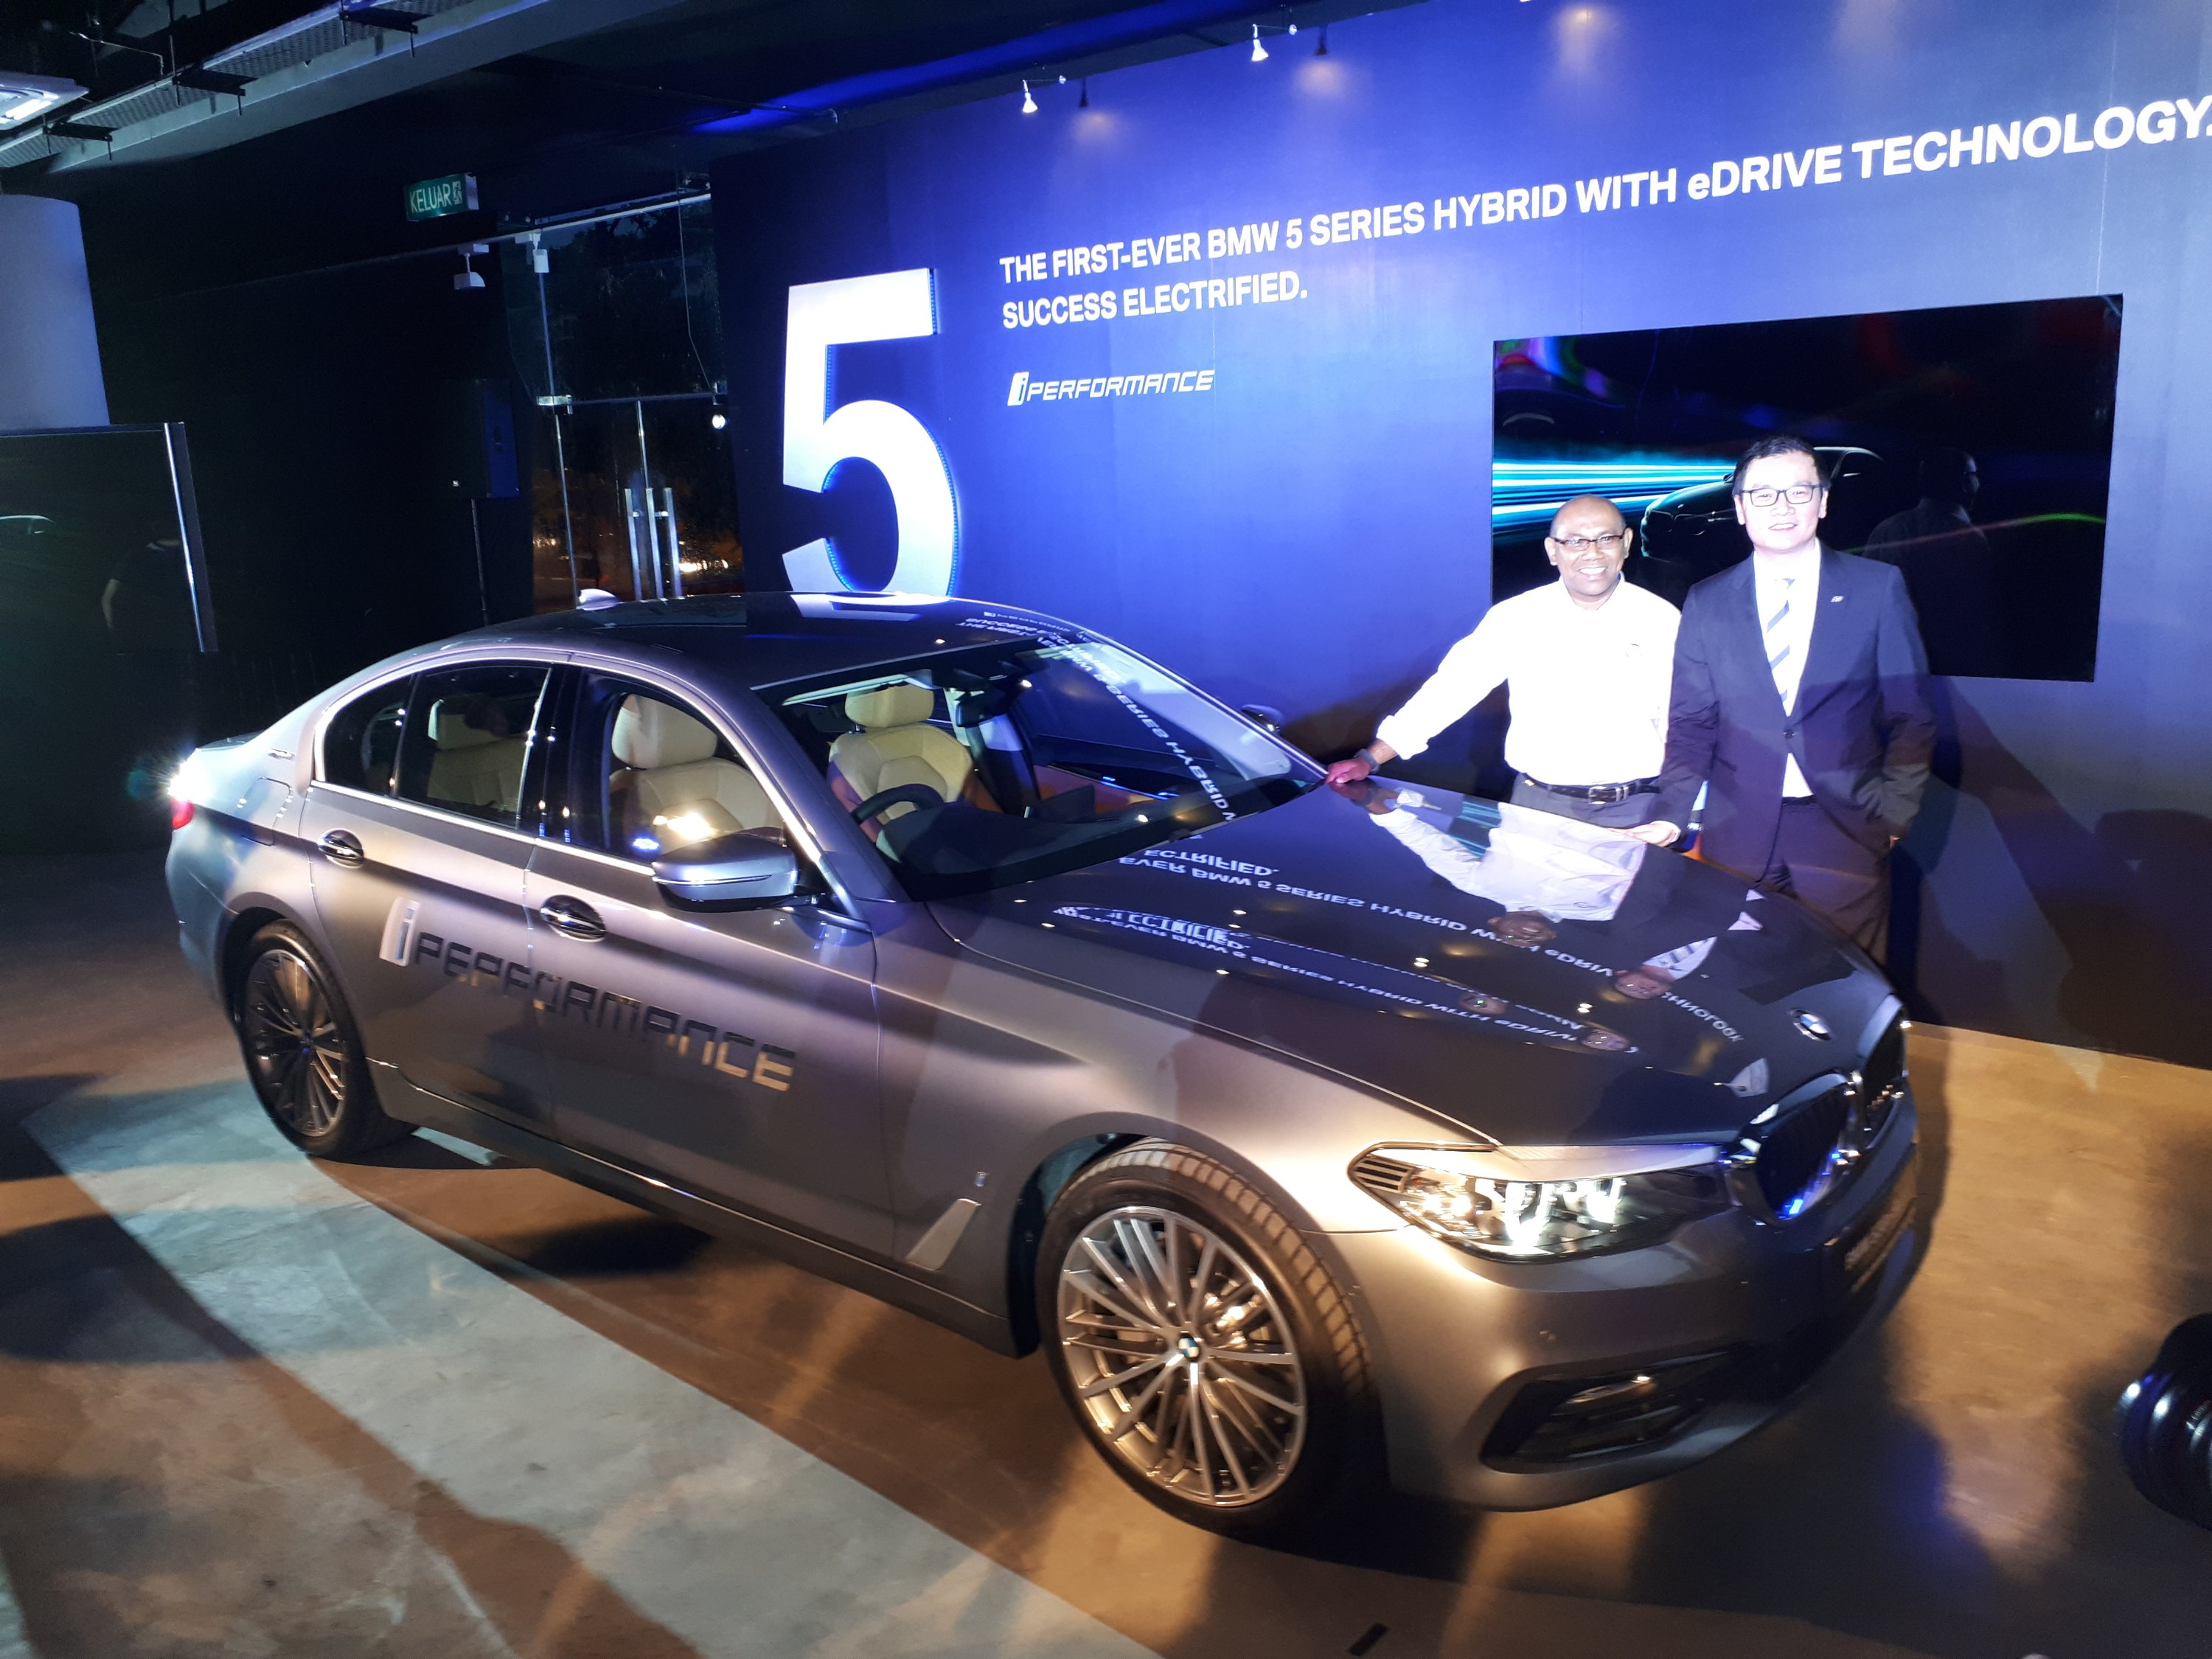 Bmw M Sia Introduces First Ever Bmw 5 Series Hybrid With Edrive